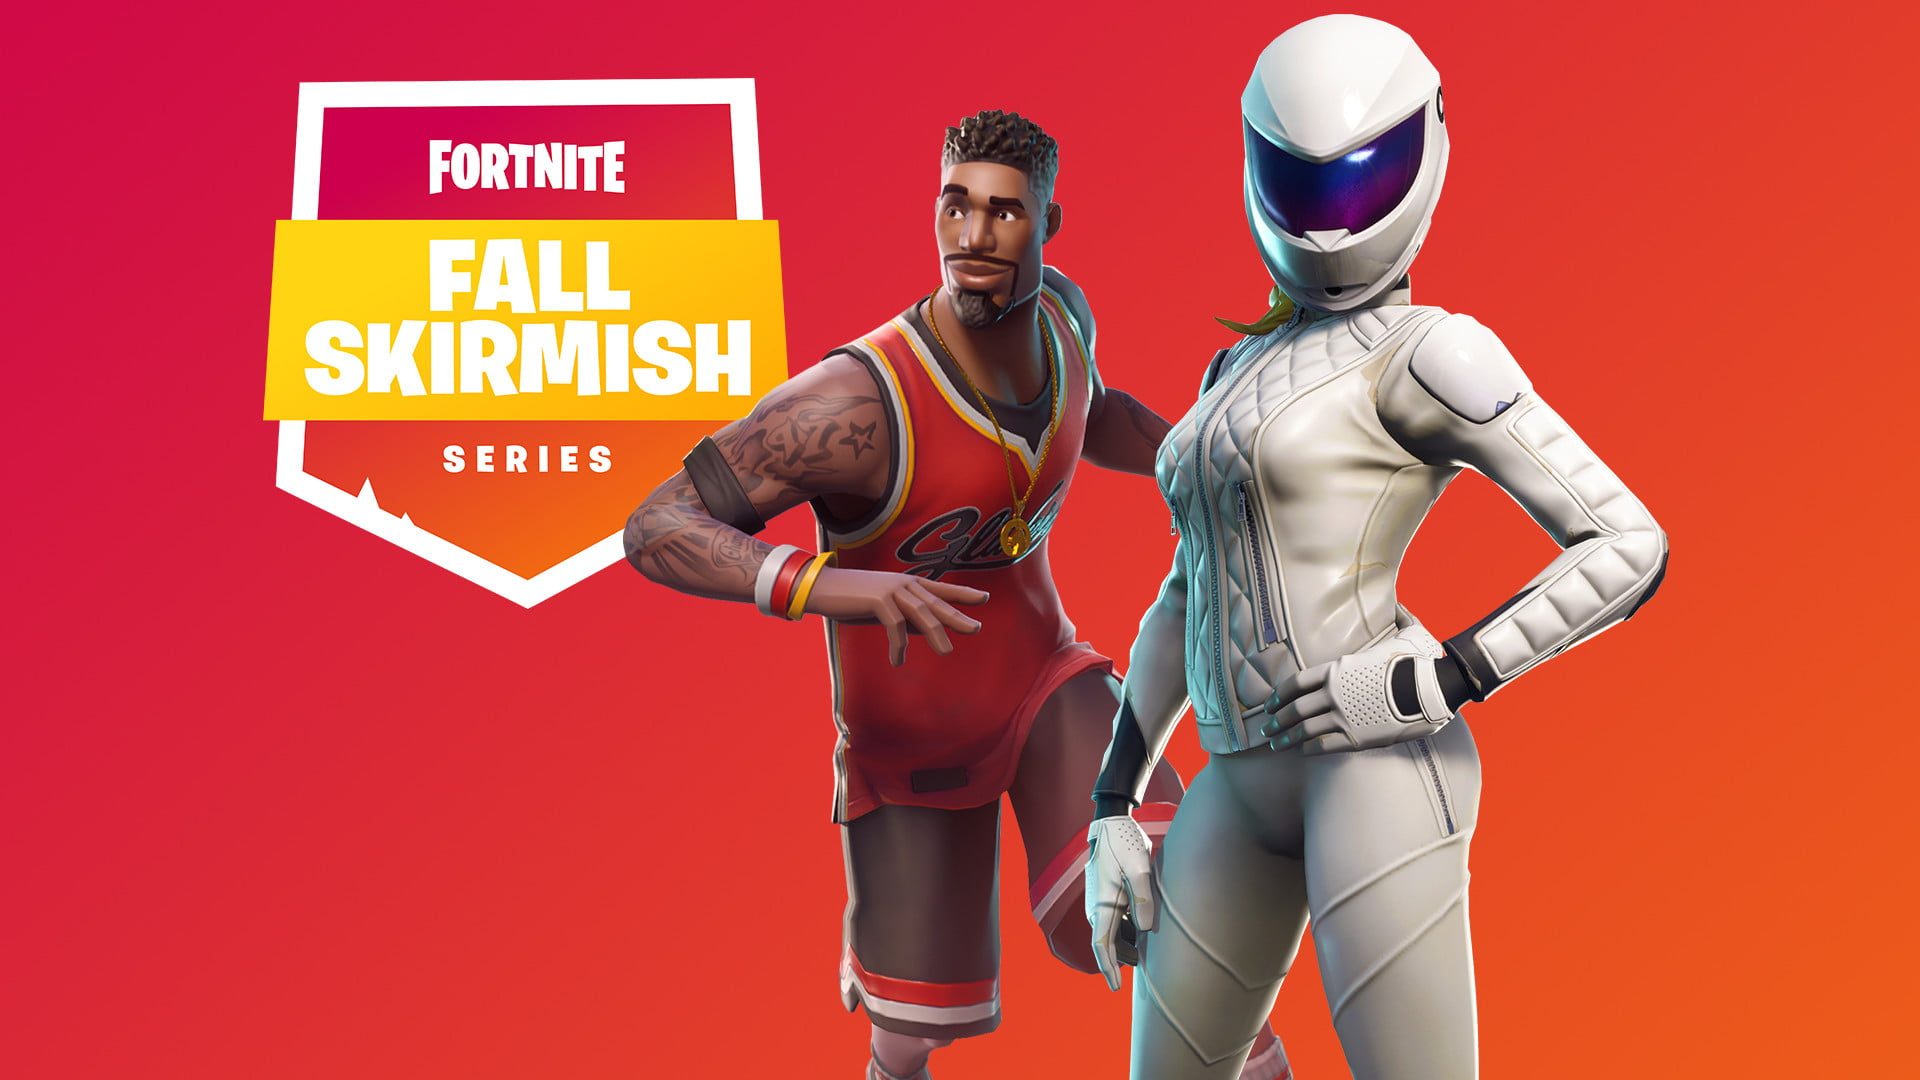 Is The Material Gain In Fortnite Different In Summer Skirmish Fortnite Fall Skirmish Week 3 Everything You Need To Know Digital Trends